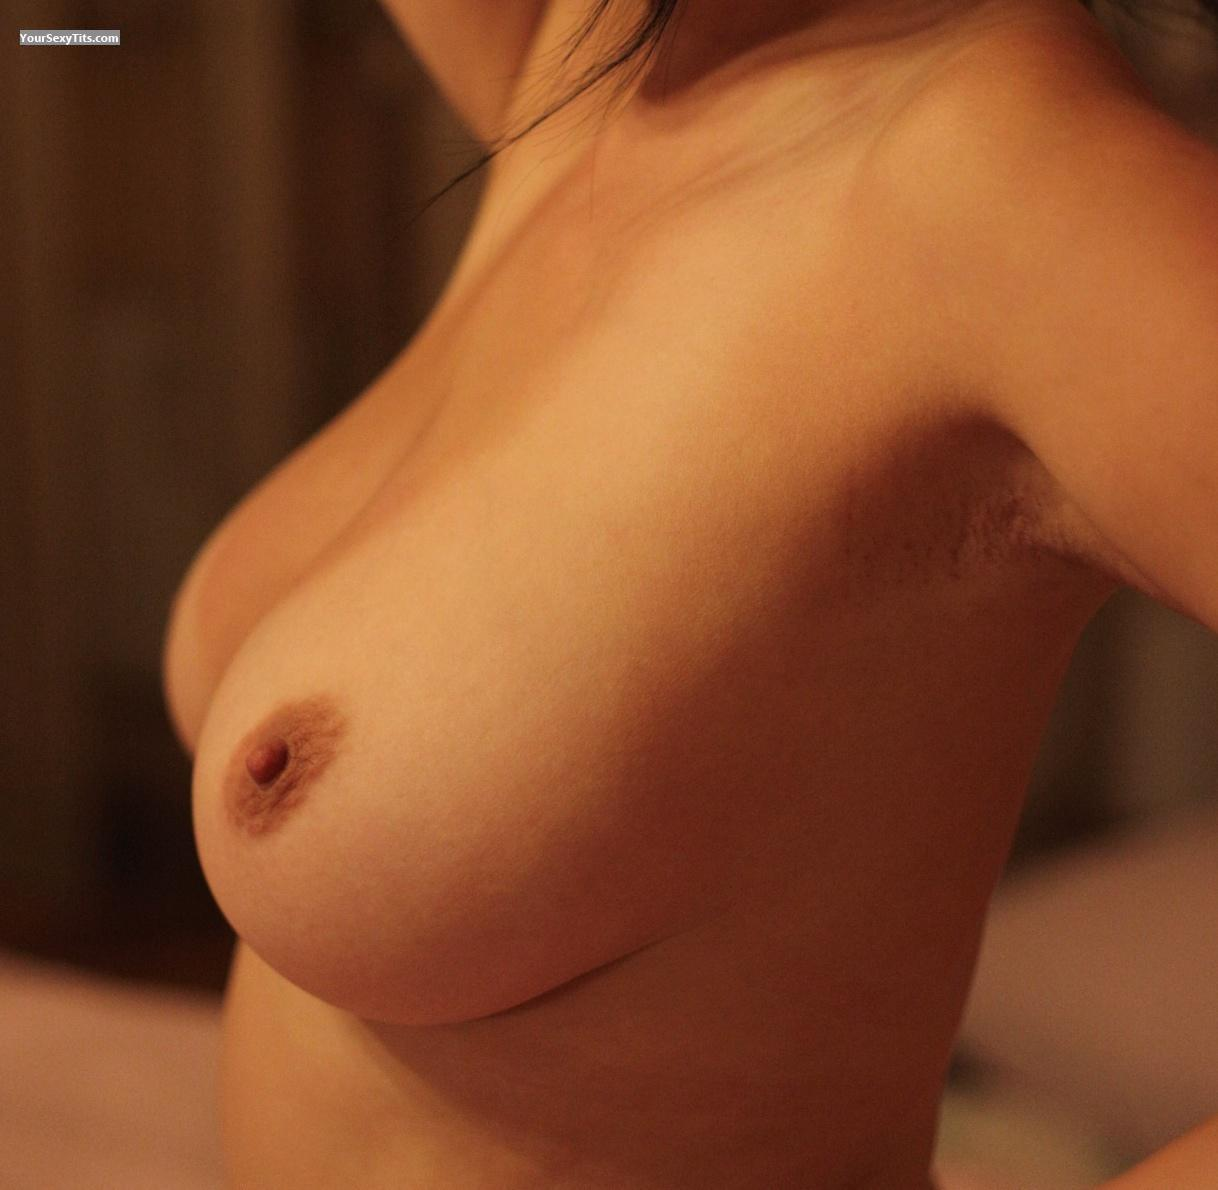 hot nude punjabi virgin beuties fucking picts blog